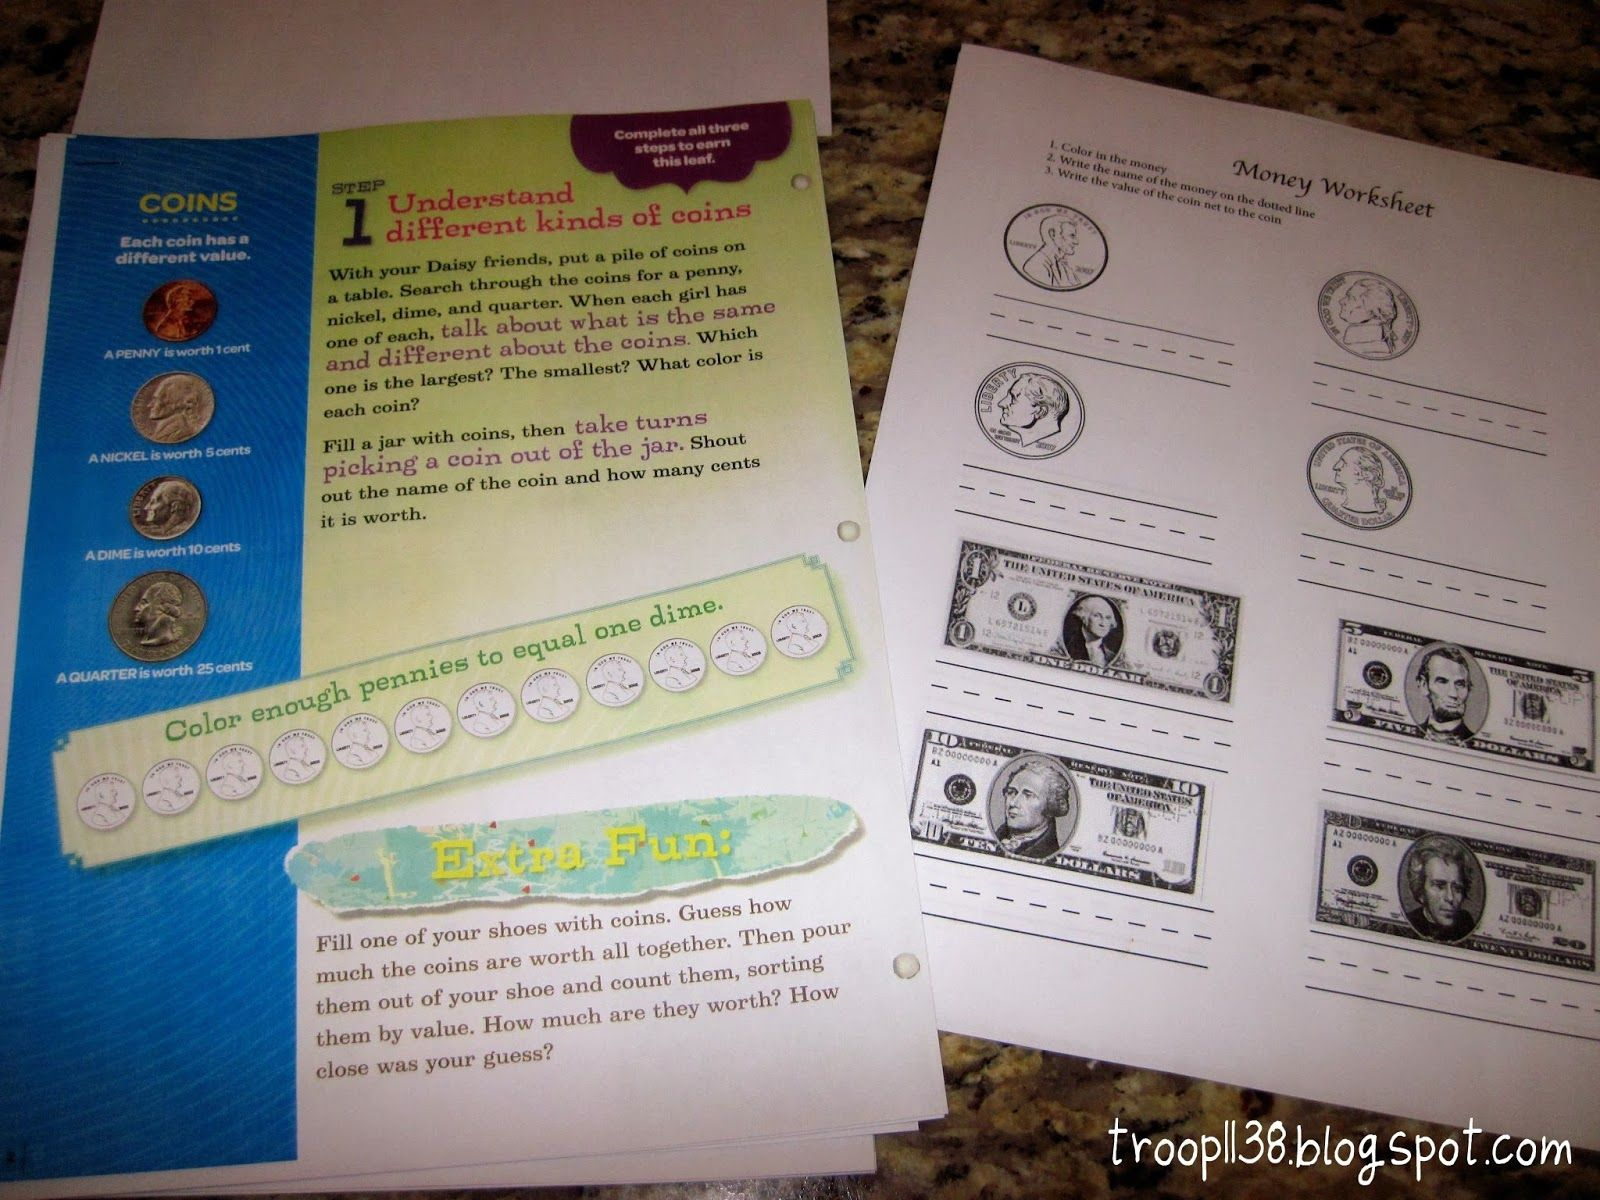 Has Link To Money Worksheet Girl Scout Troop Investiture Rededication Amp Money Counts